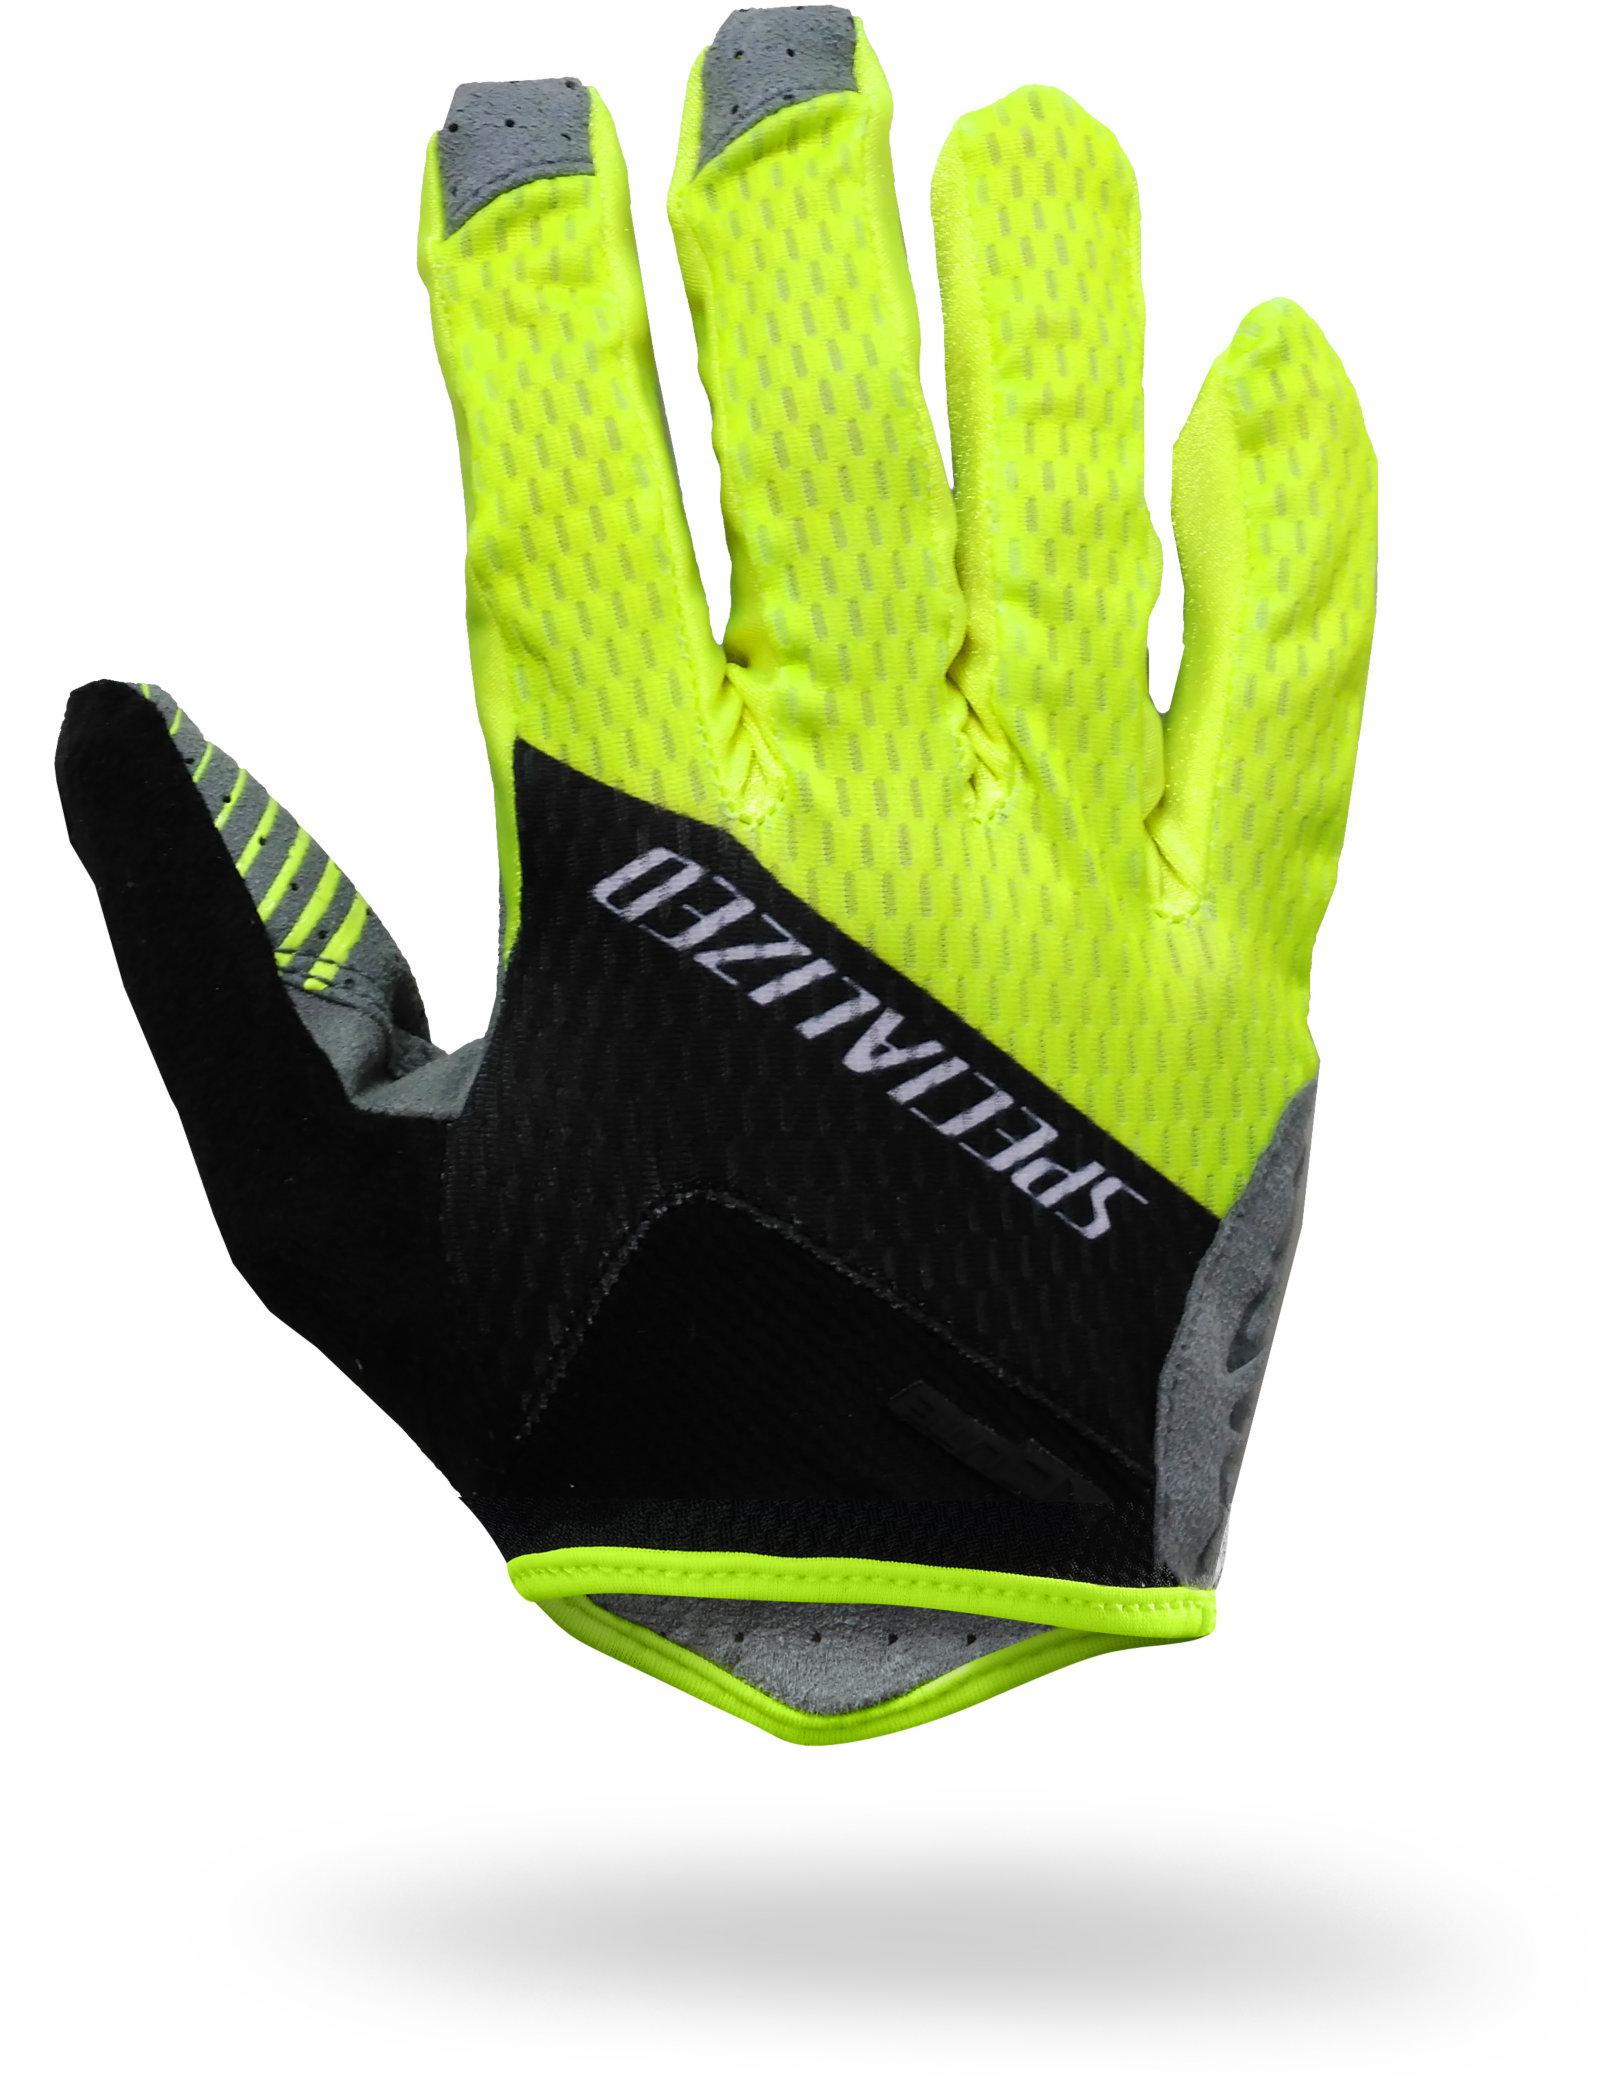 SPECIALIZED XC LITE GLOVE LF BLK/NEON YEL TEAM XL - Alpha Bikes